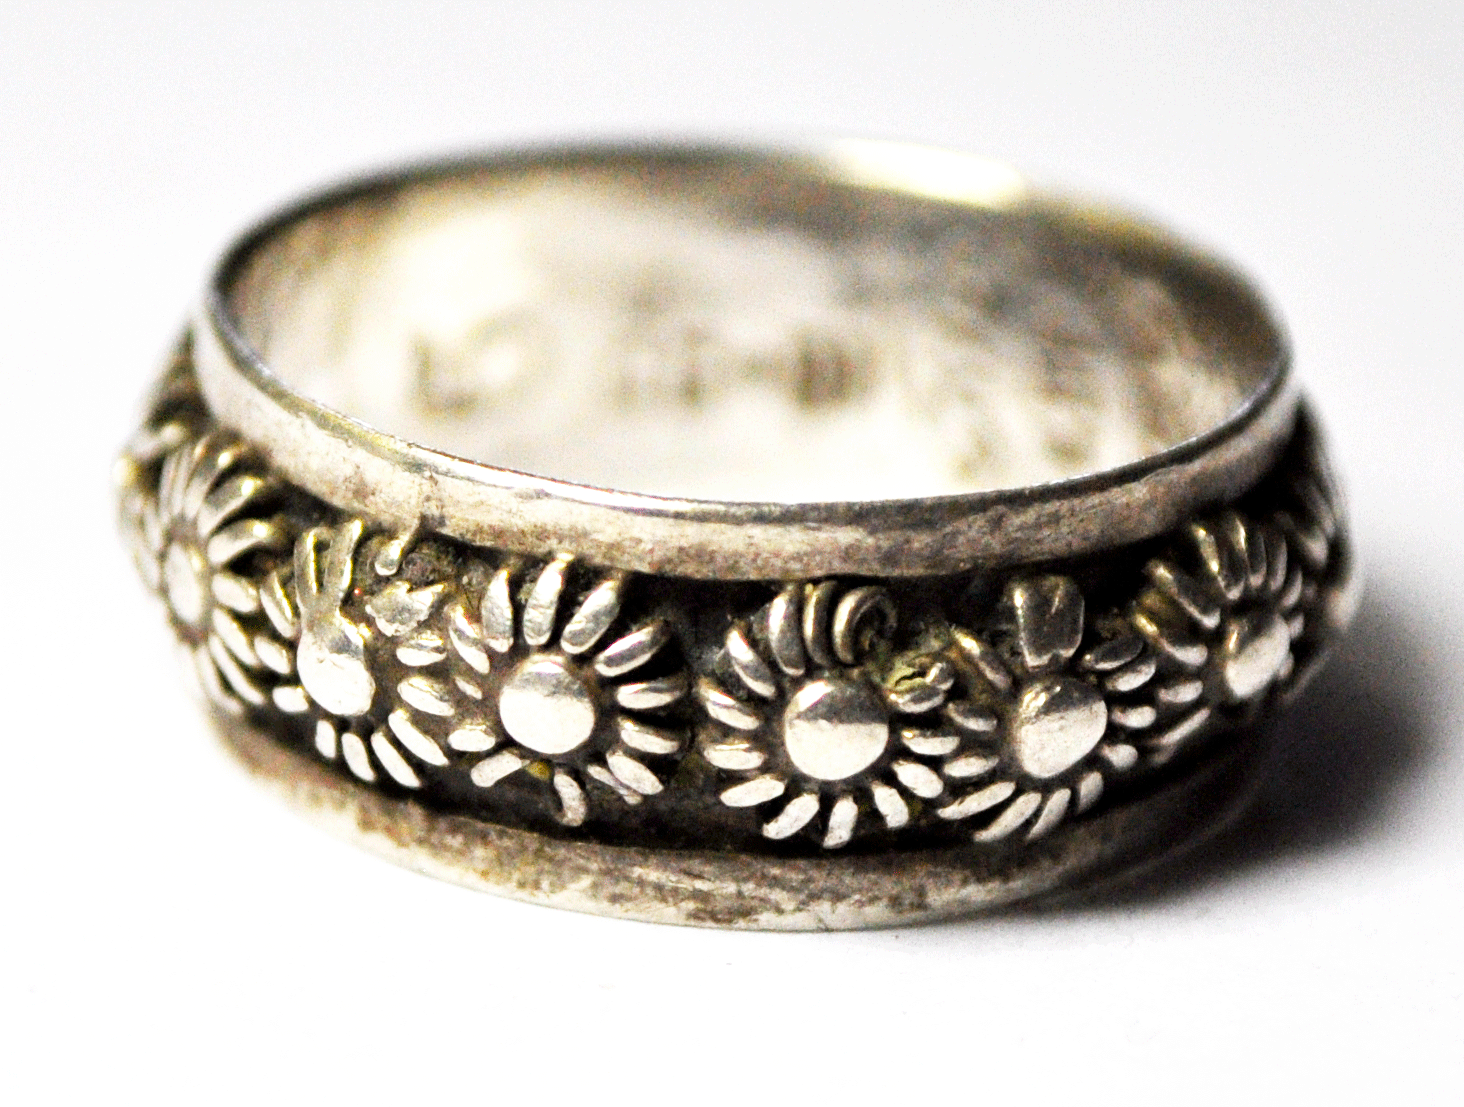 TAXCO 950 STERLING SILVER OXIDIZED WRAP AROUND RING Mexico Vintage Style Jewelry